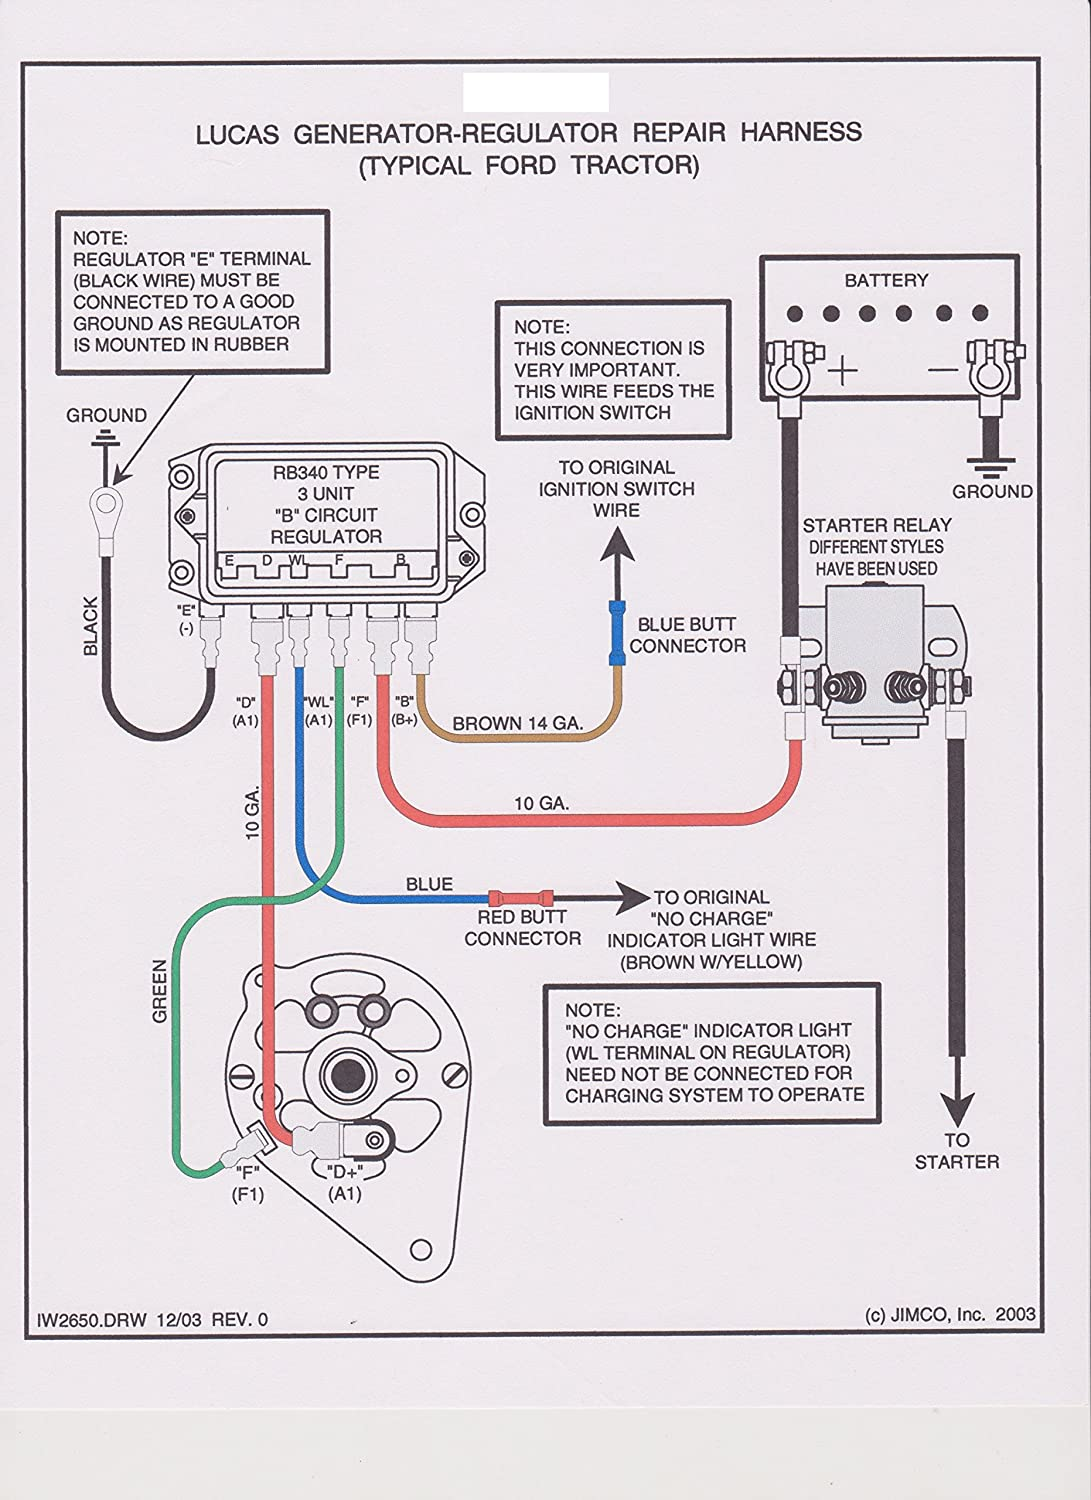 1 Wire Alternator Wiring Diagram from images-na.ssl-images-amazon.com